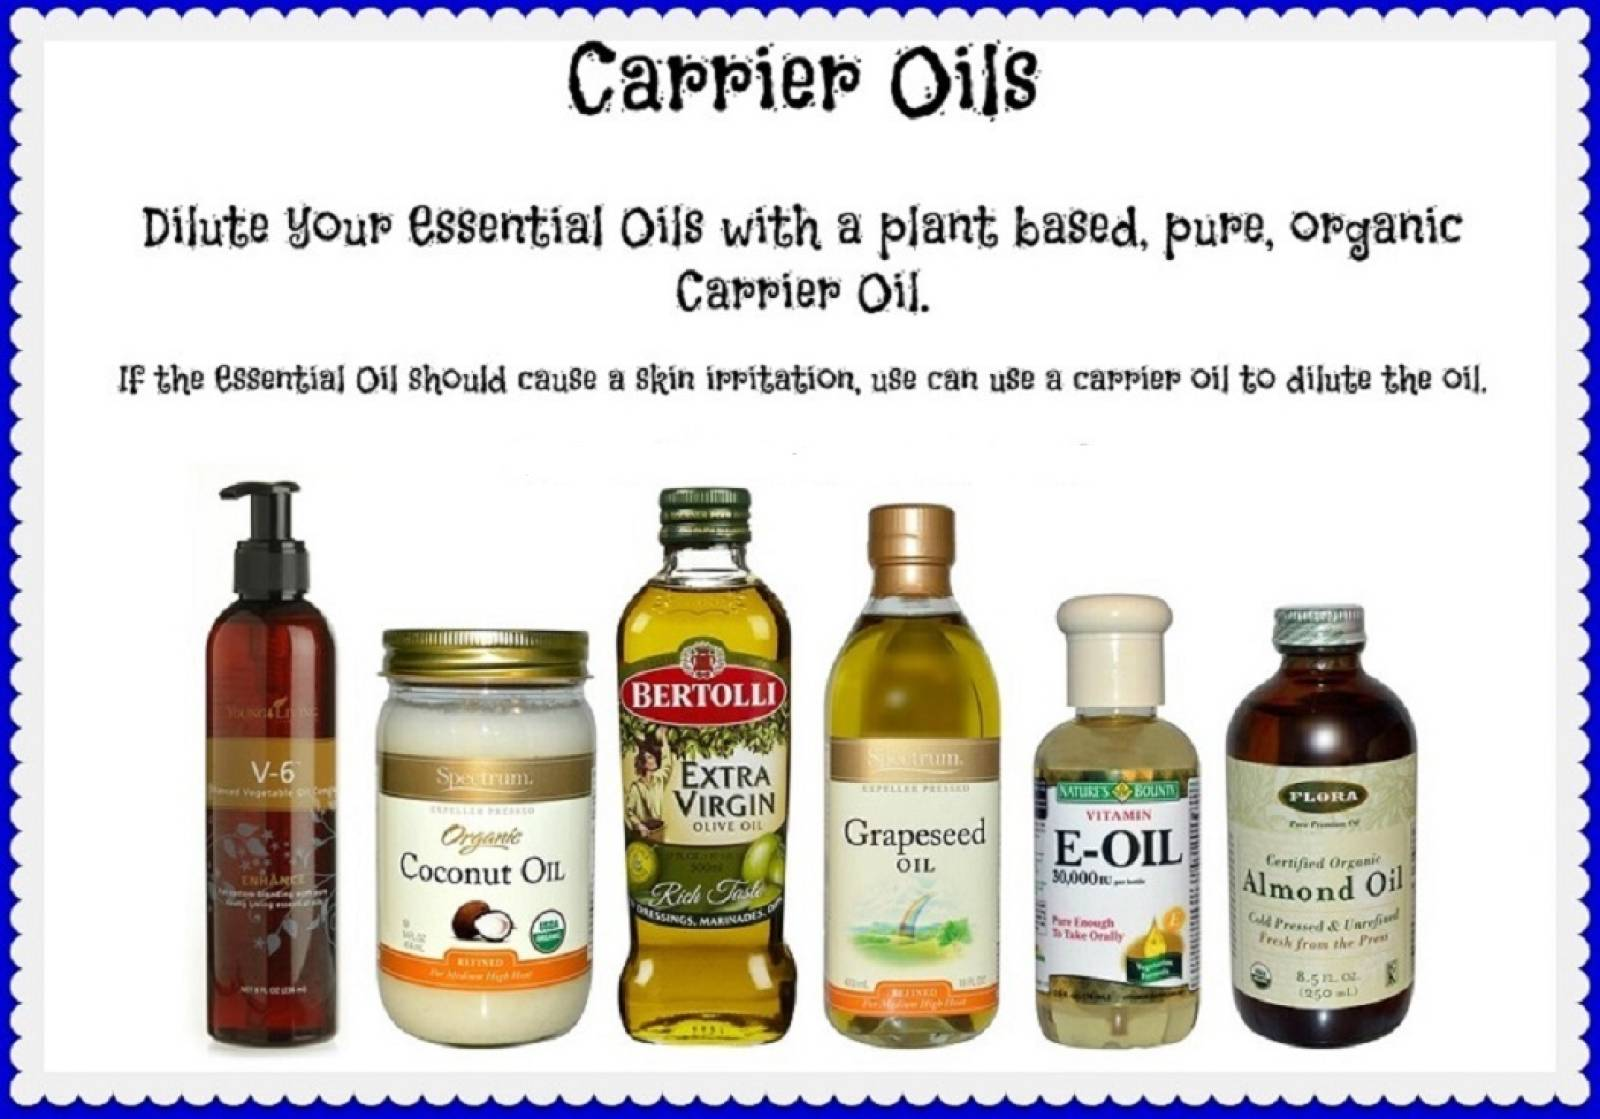 Carrier Oils